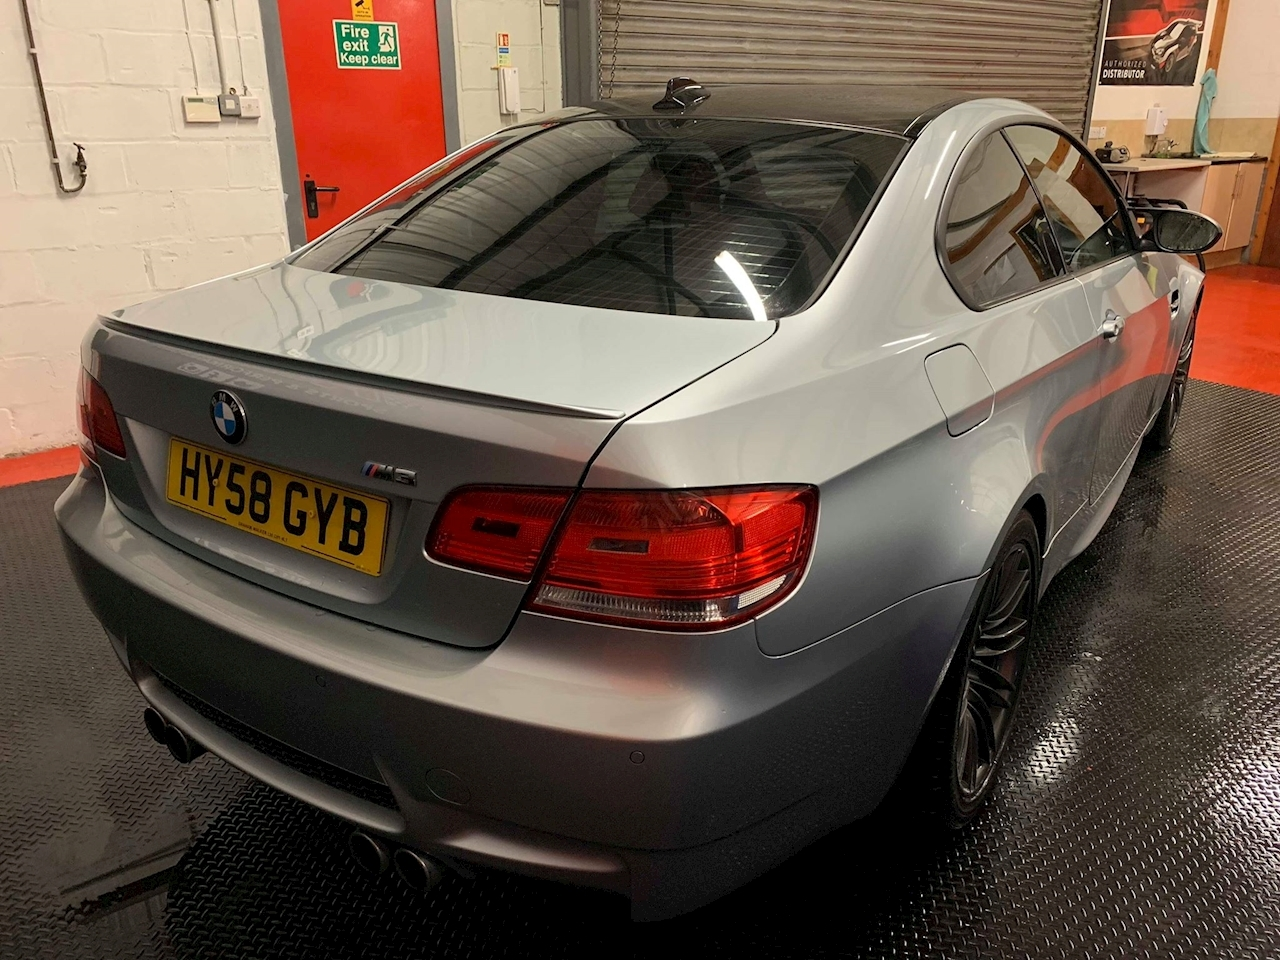 Used 2008 bmw 3 series m3 coupe 4 0 manual petrol for sale - Used bmw m3 coupe for sale ...